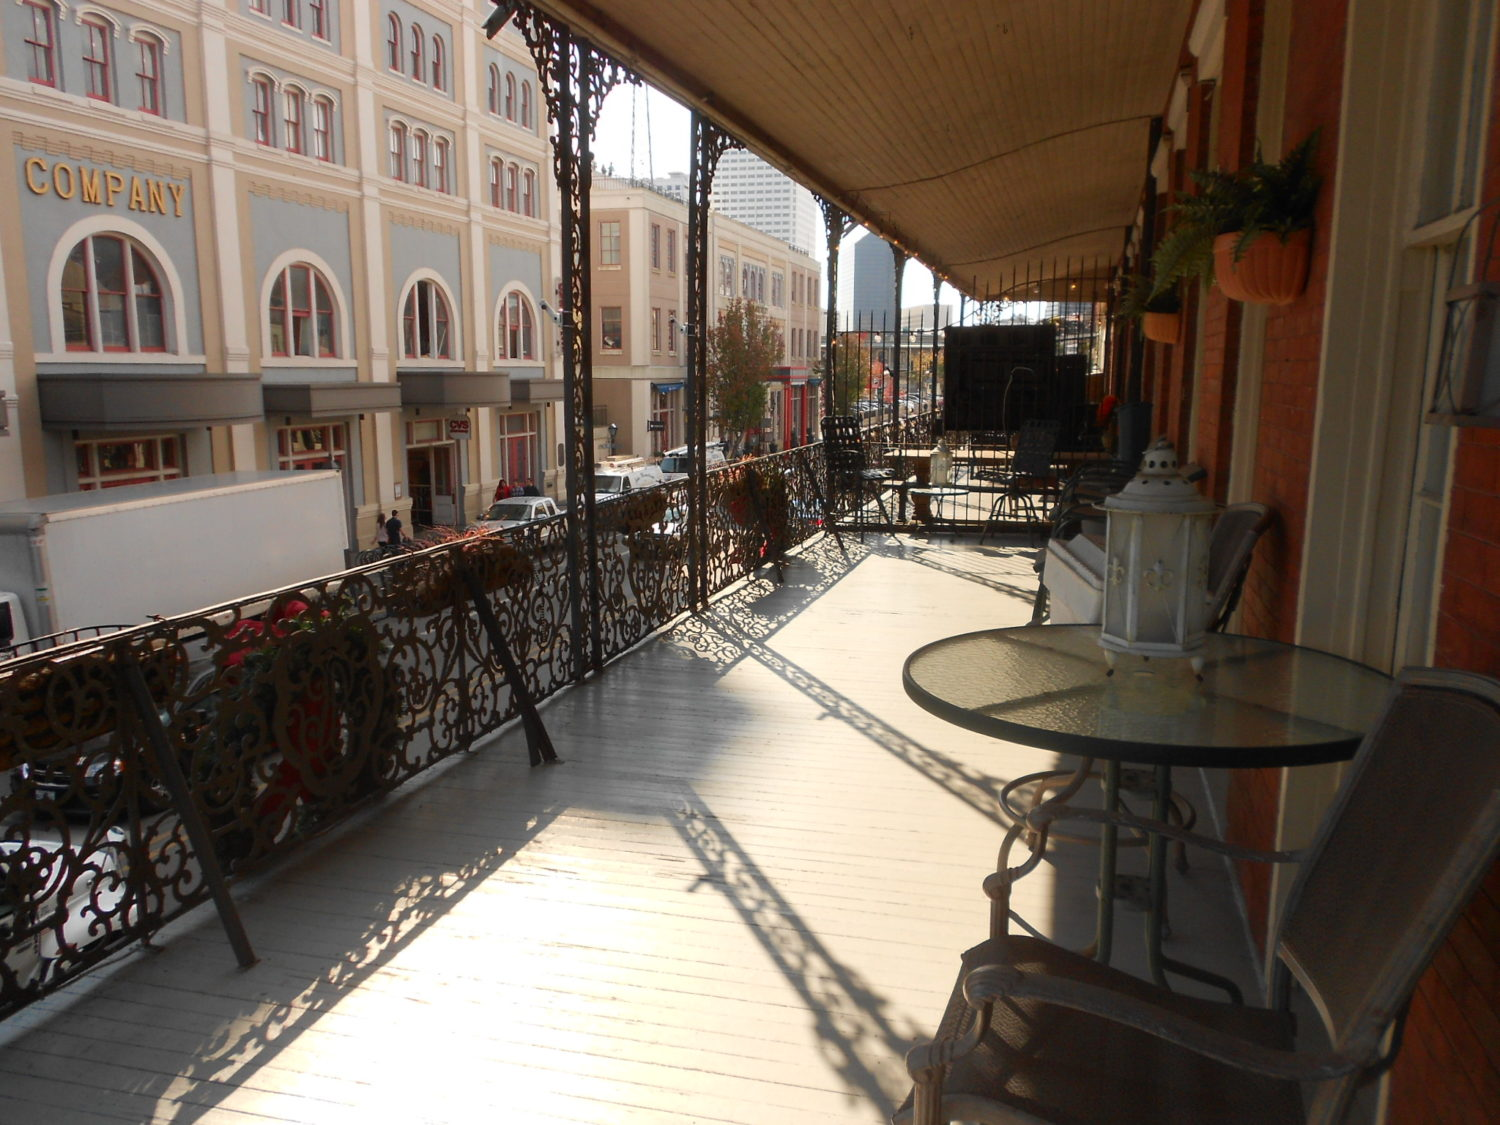 Commercial Property New Orleans